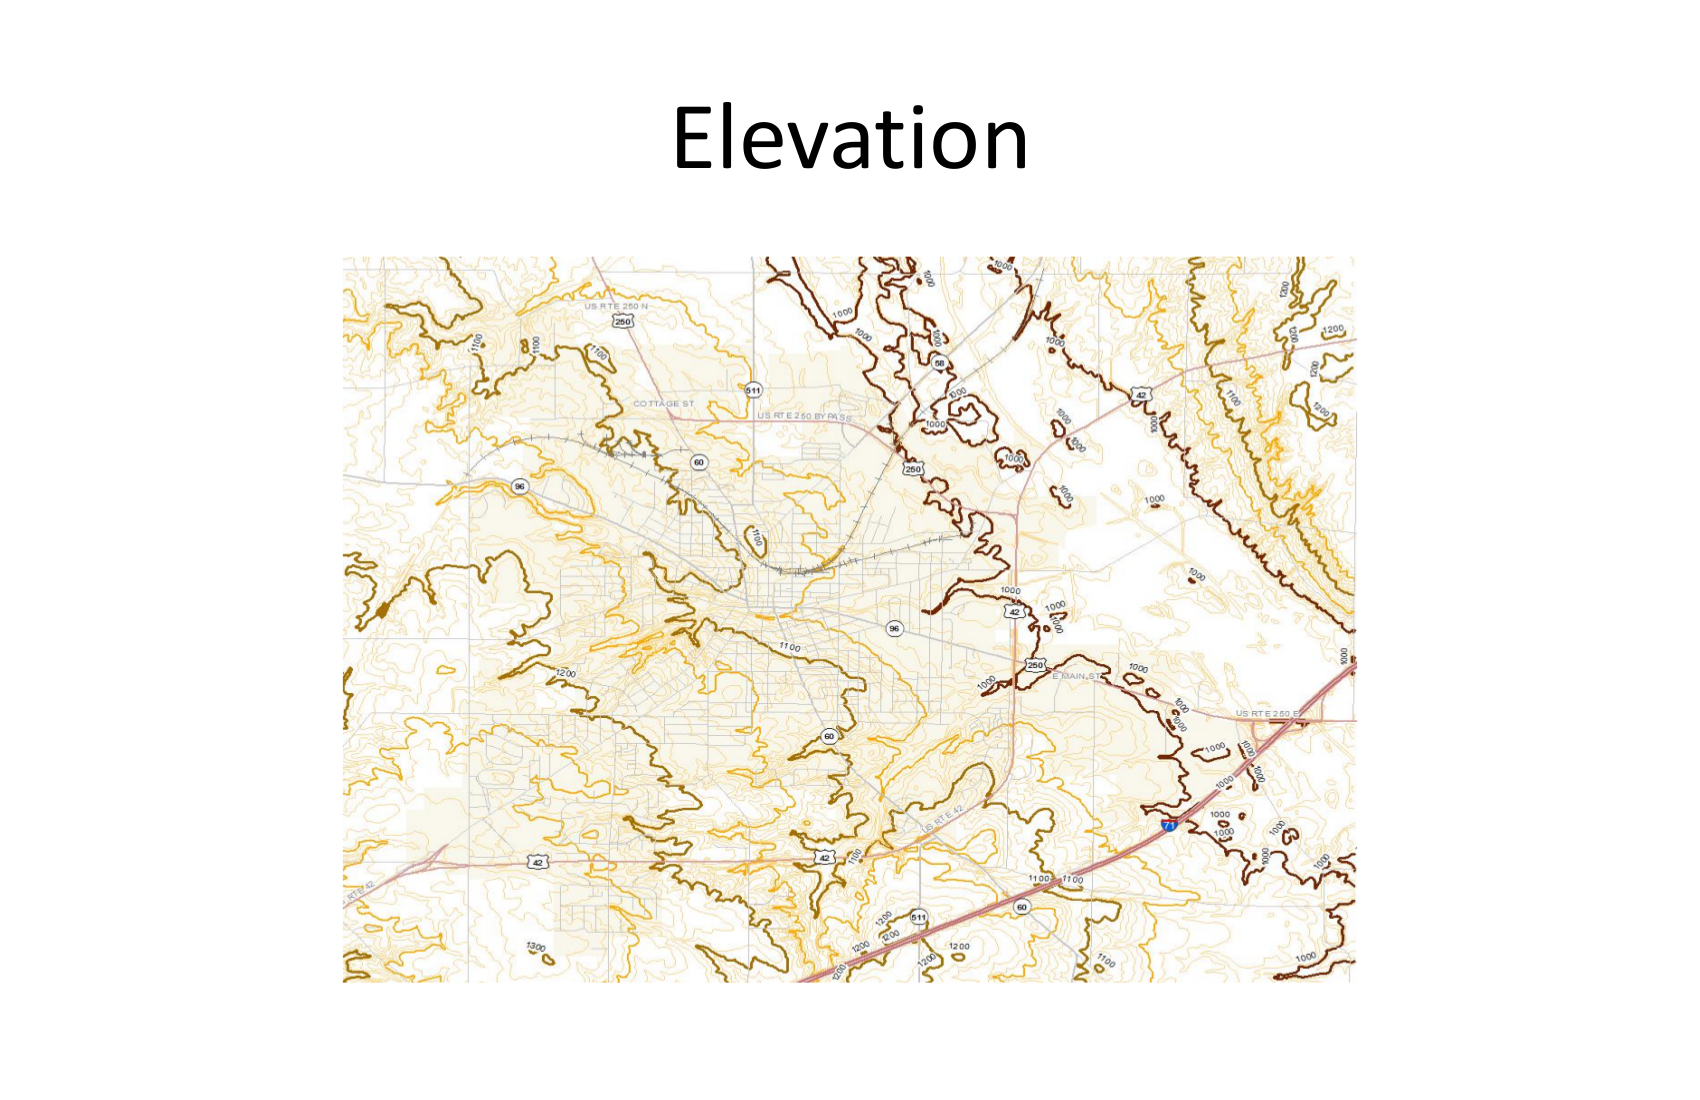 elevation map example